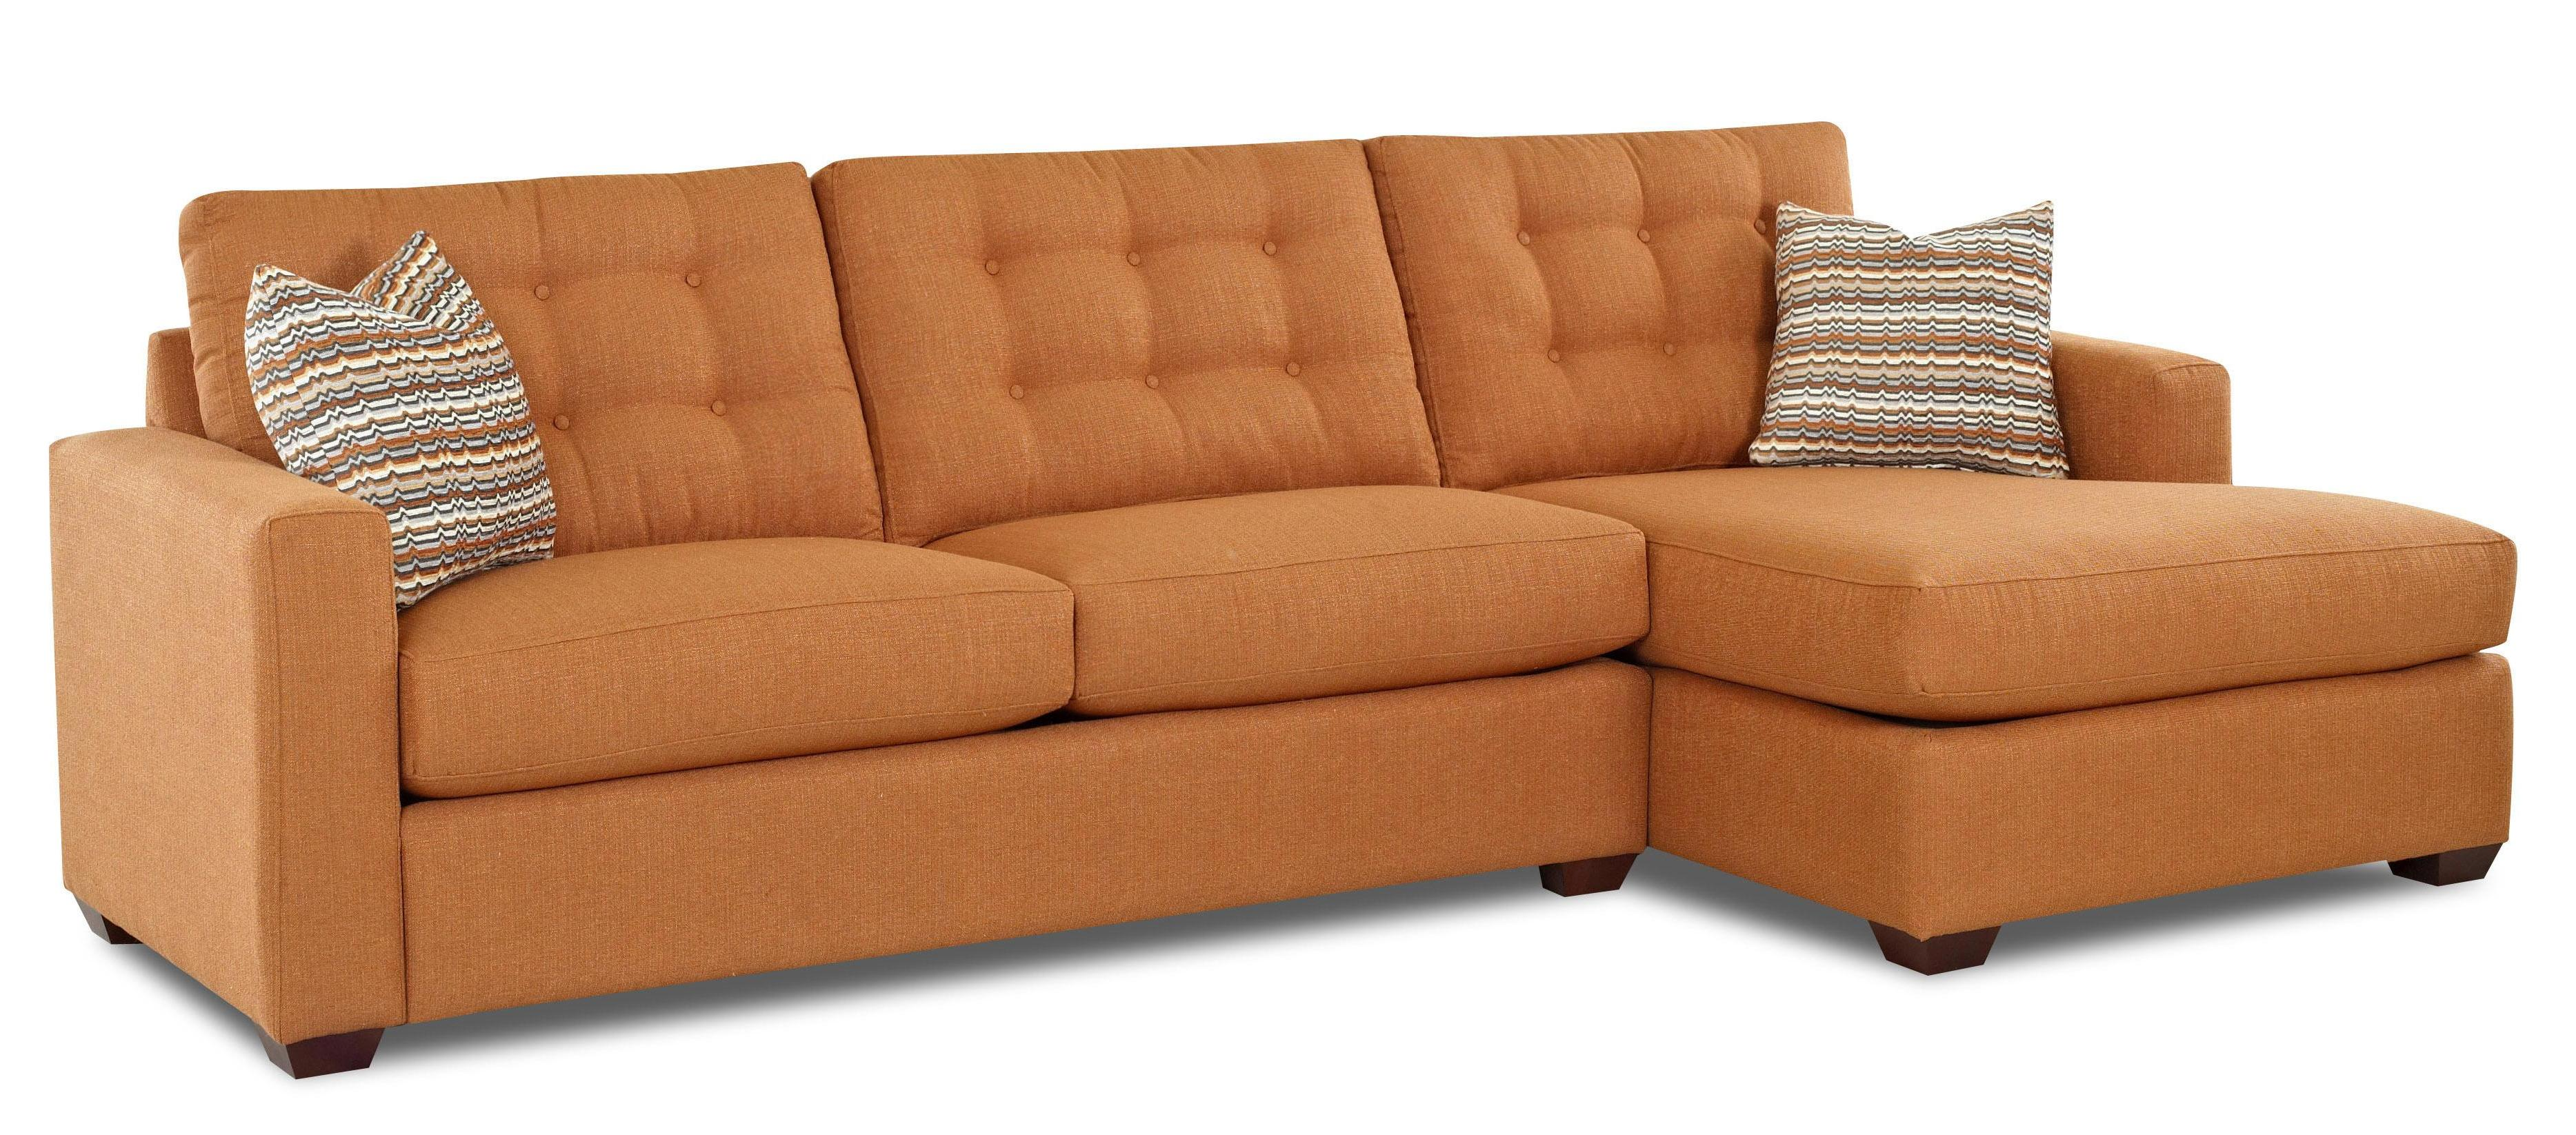 Contemporary Sectional Sofa with Right Facing Chaise Lounge by